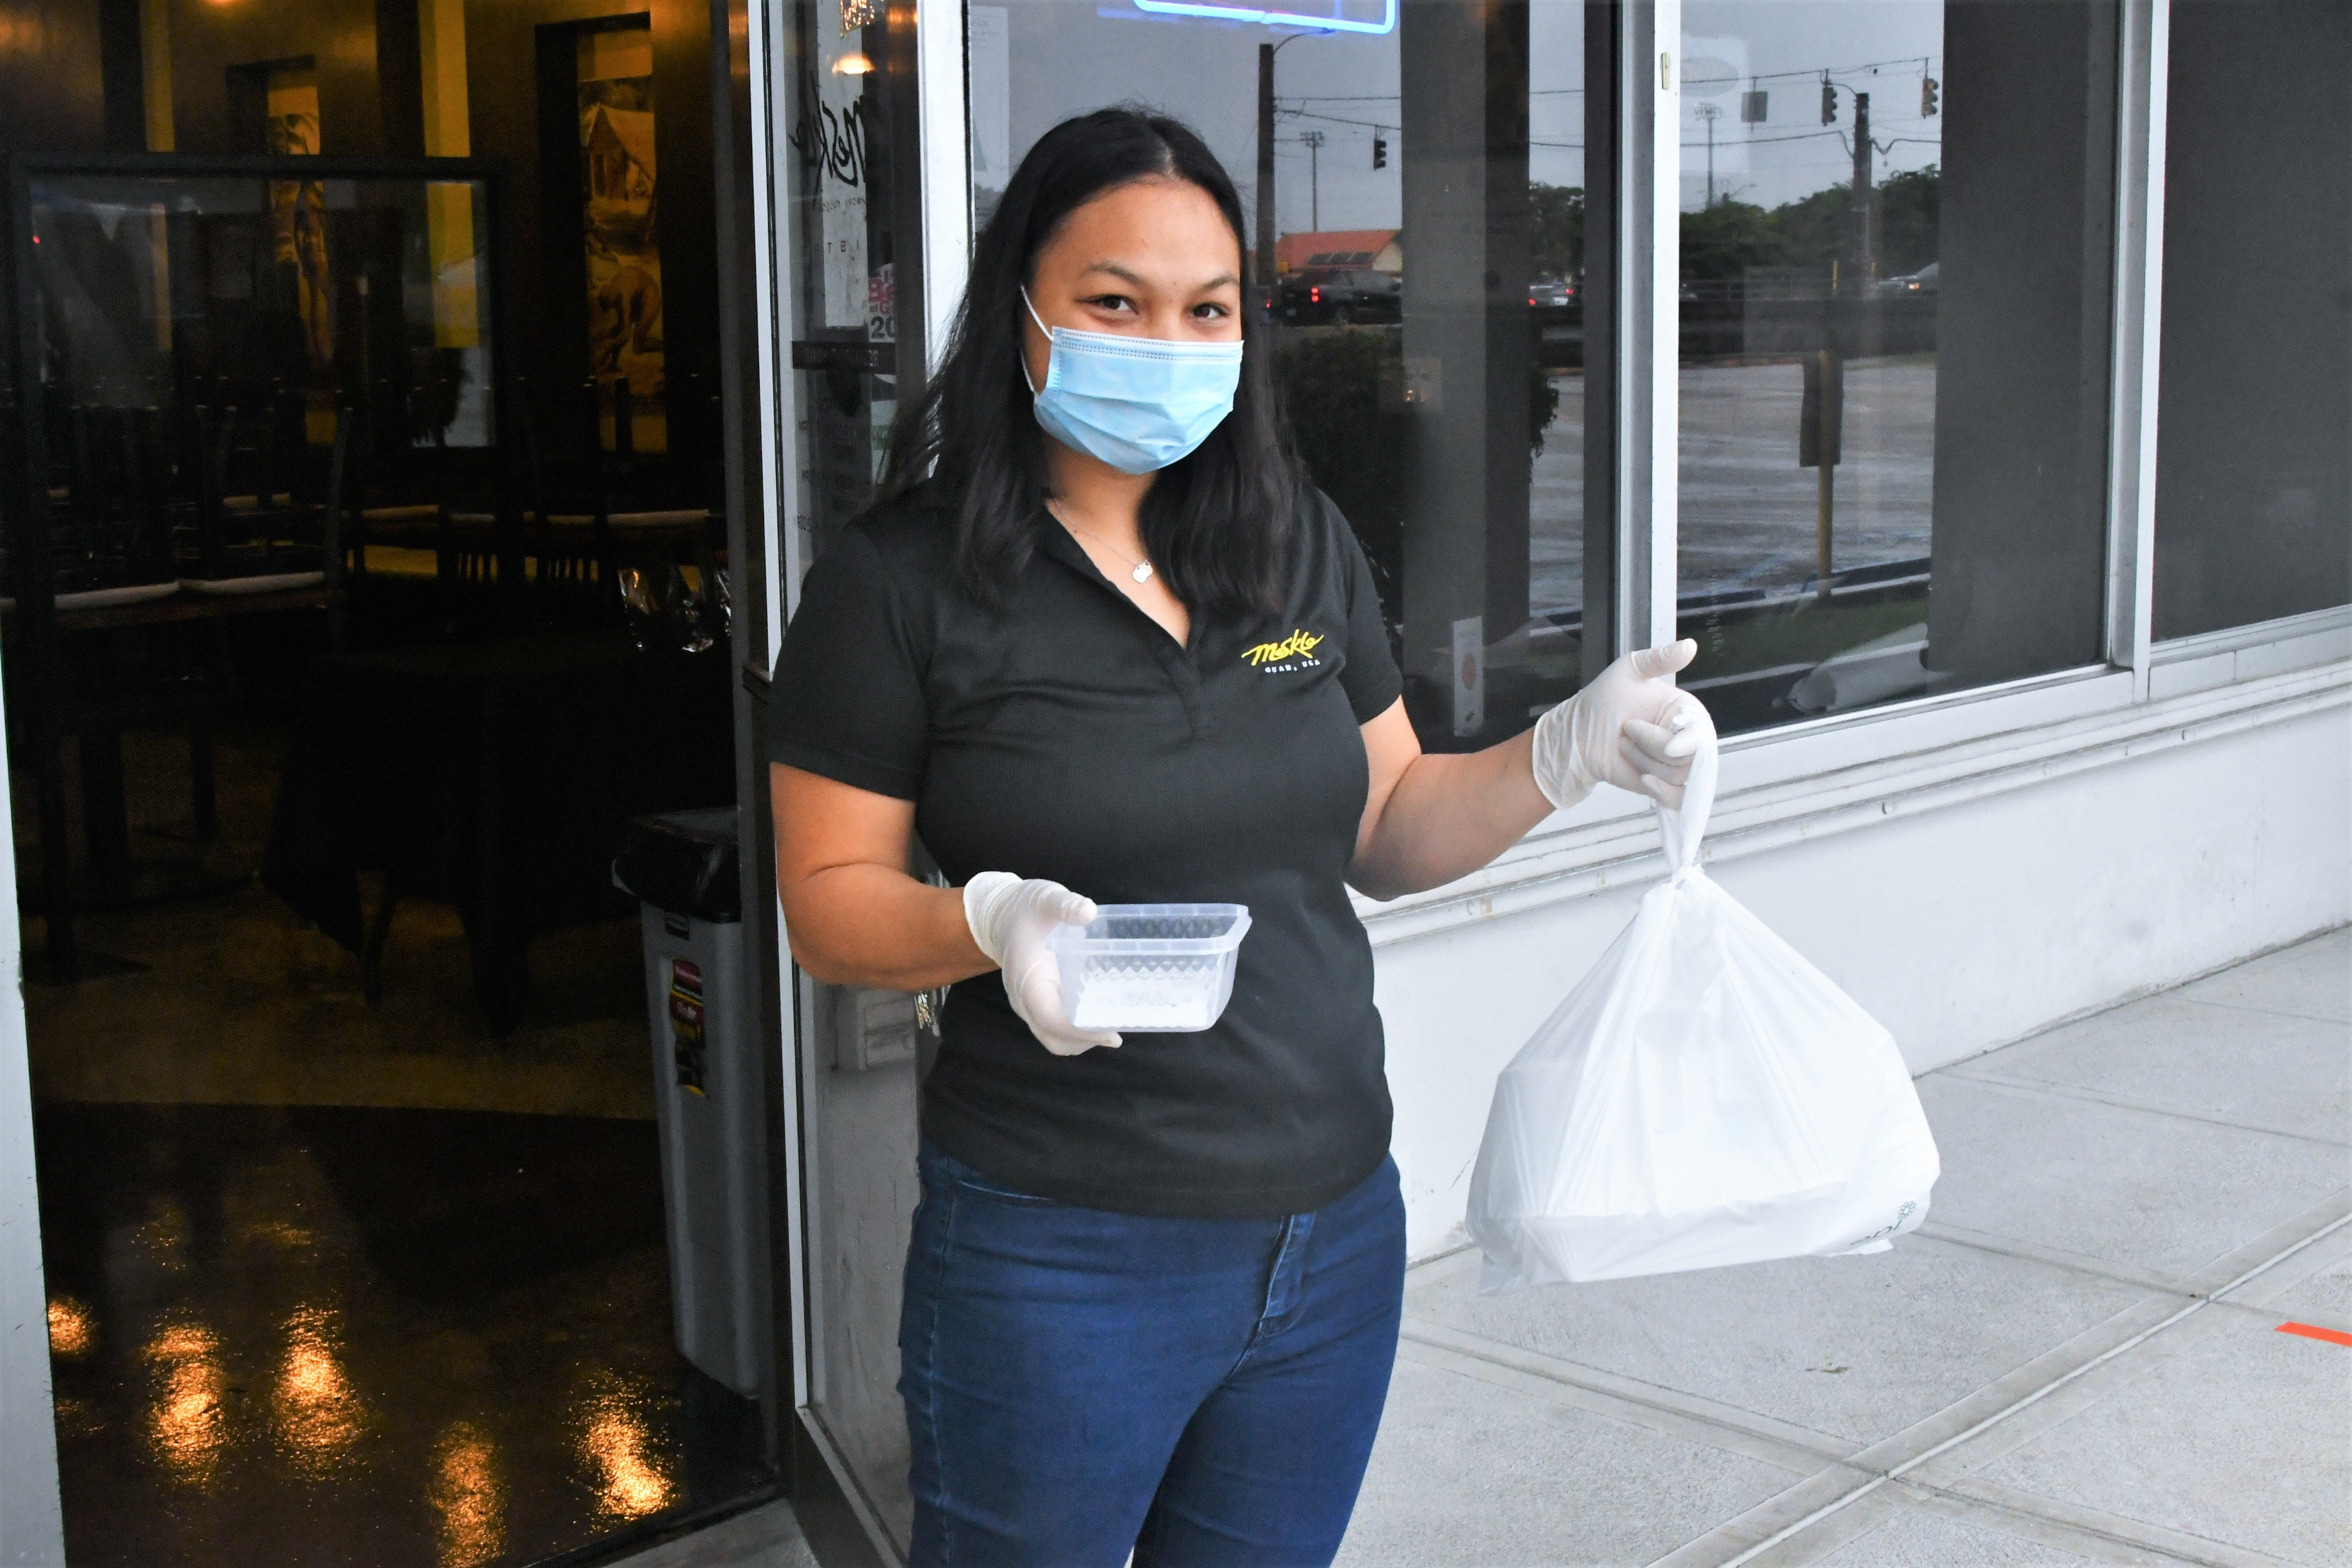 Breanalyn Edwards smiles as she heads out of the Meskla Chamoru Fusion Bistro to deliver food to customers in the parking lot on Sept. 16, 2020.